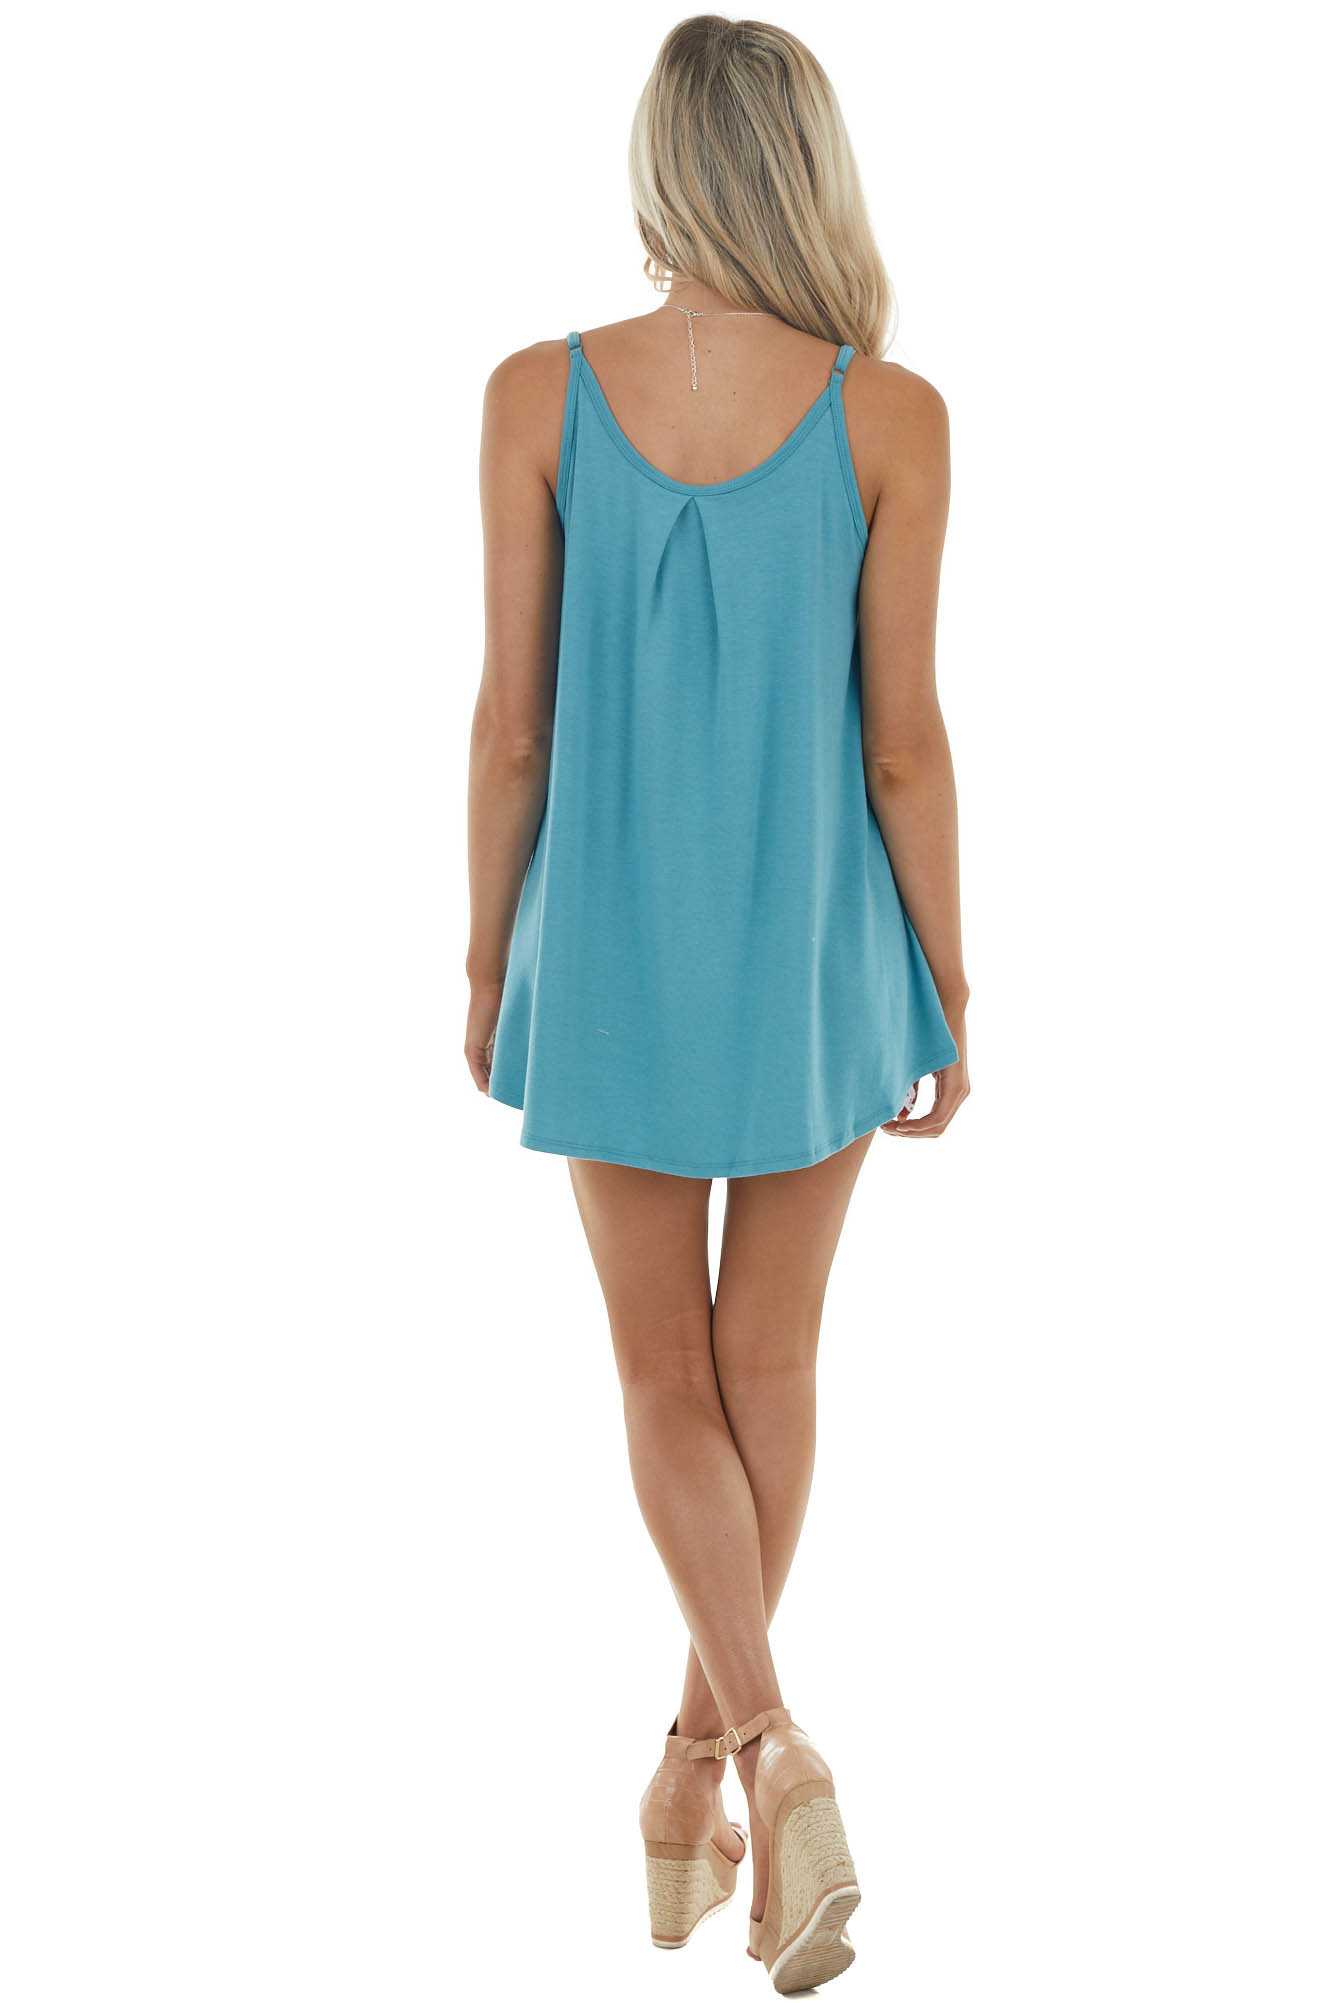 Sea Blue Sleeveless Knit Top with Pleated Neckline